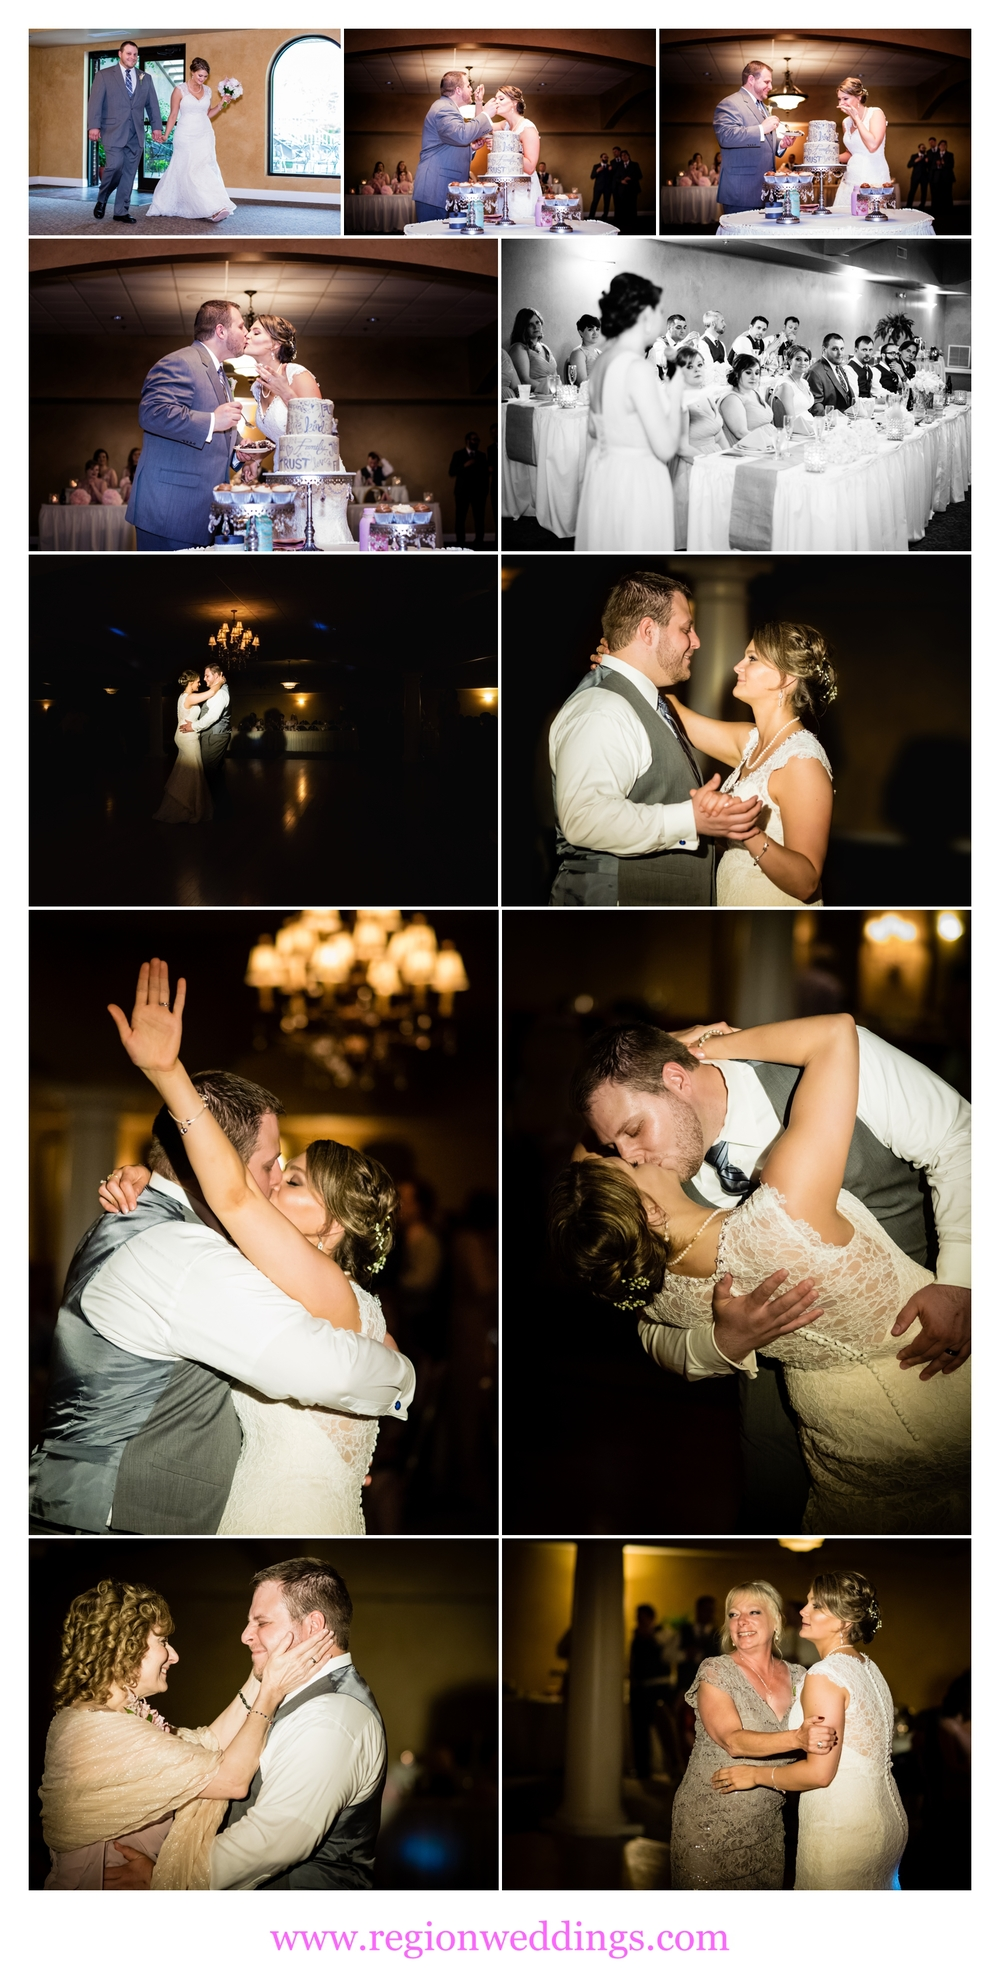 Wedding reception photo collage at Trinity Hall in Chesterton.